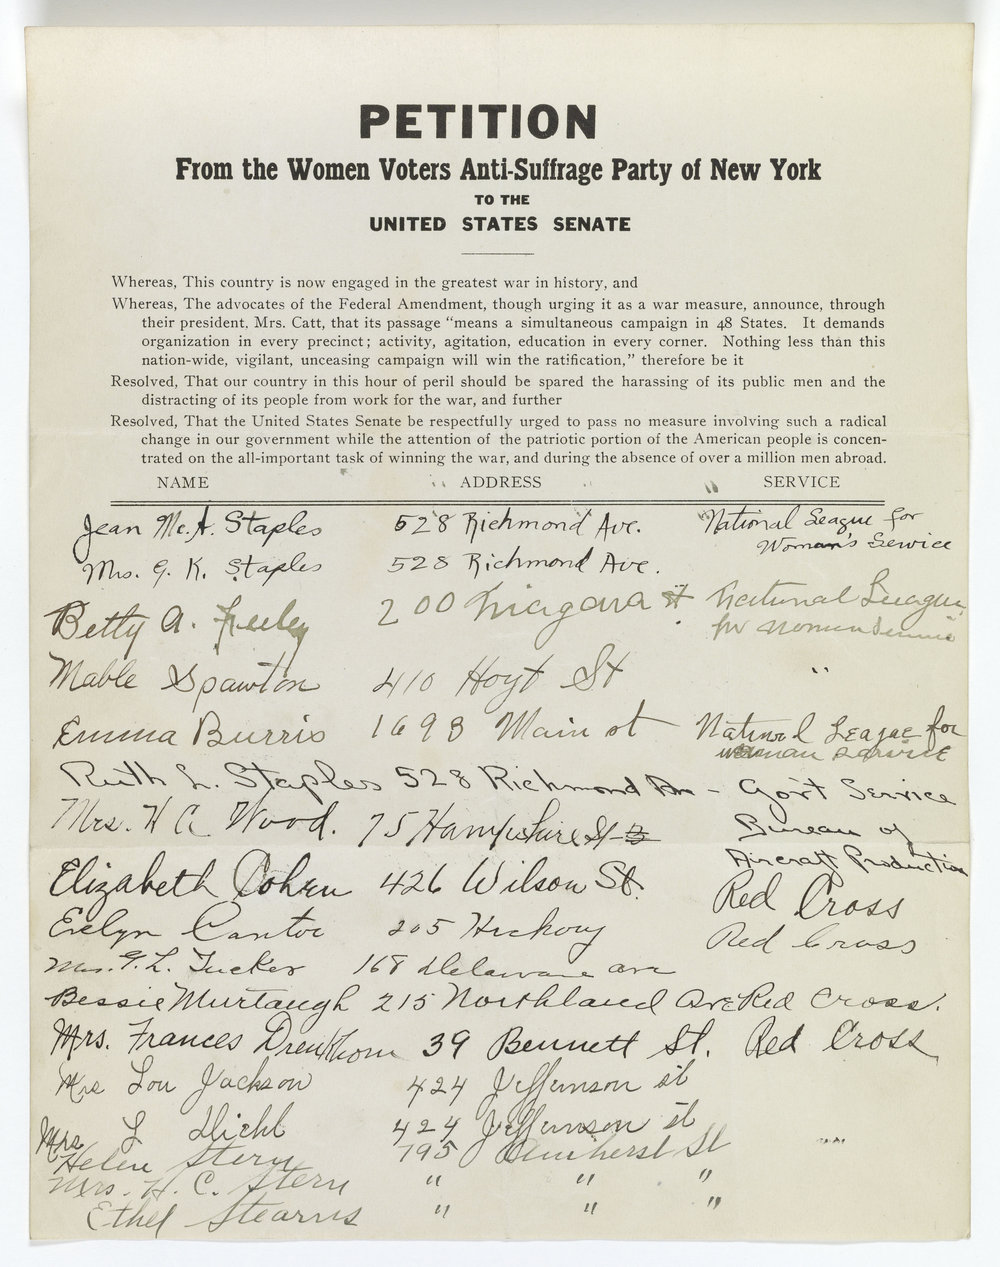 Petition from the Women Voters Anti-Suffrage Party of New York to the United States Senate